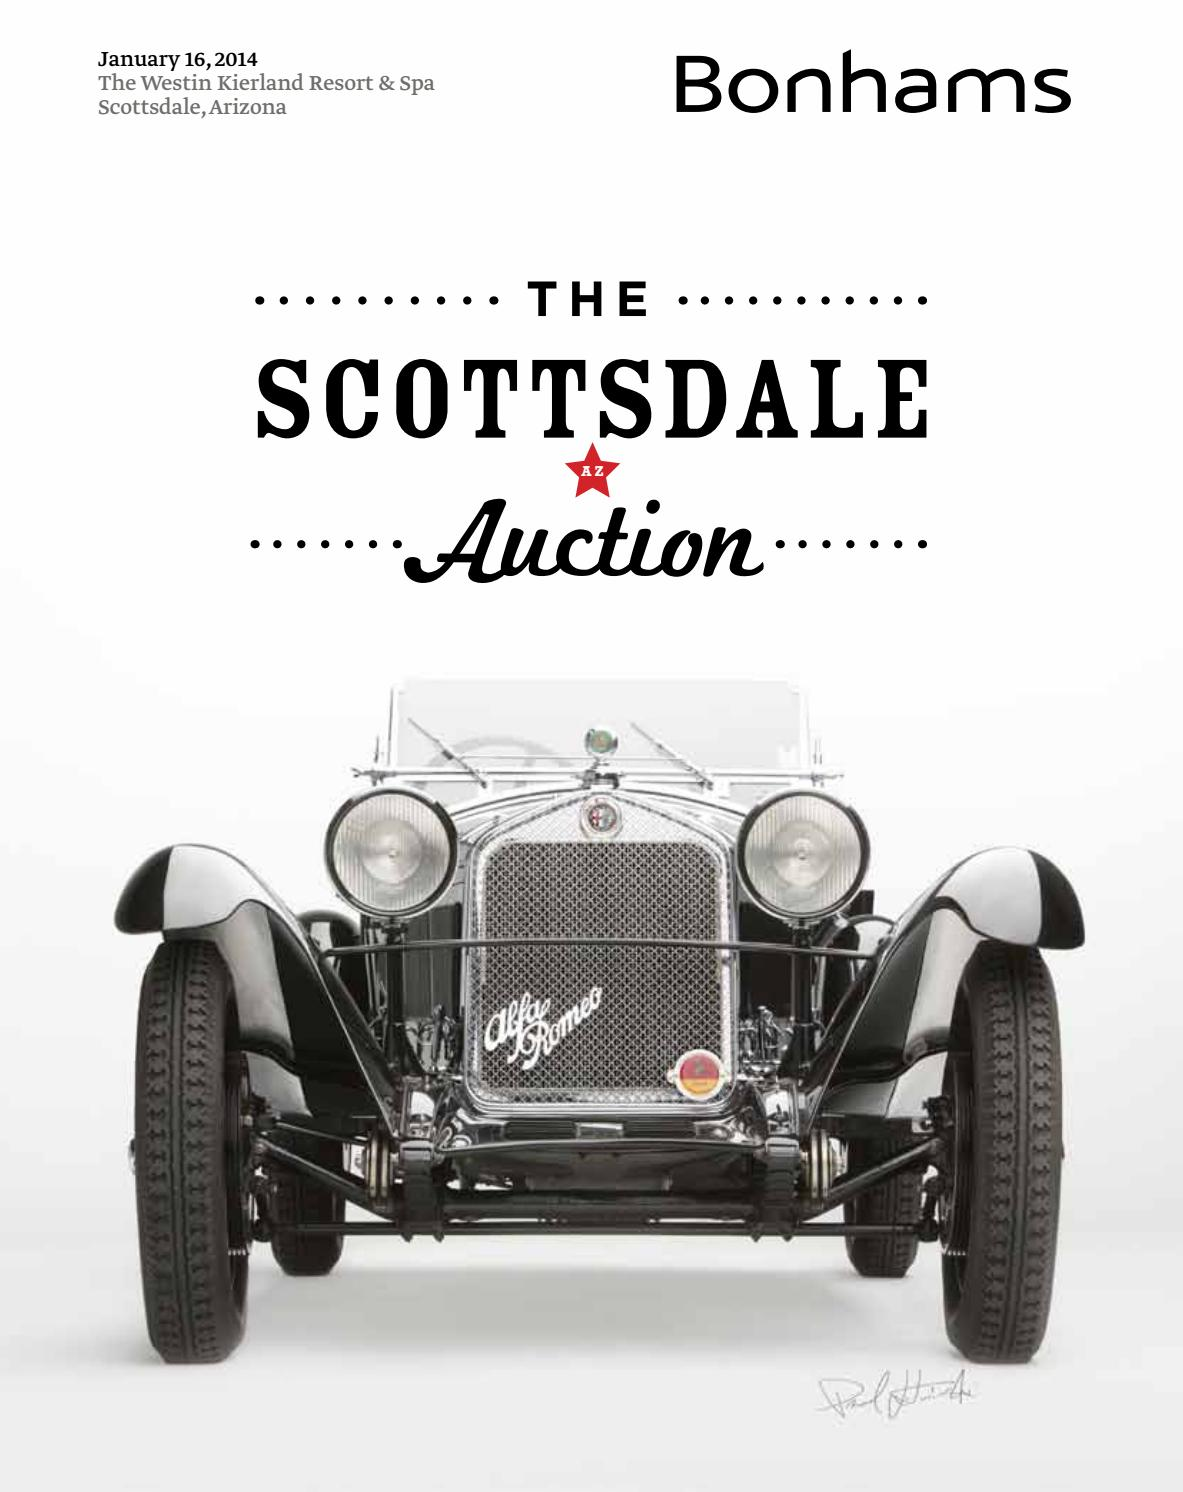 The Scottsdale Auction Jan 16 2014 by guido maraspin issuu